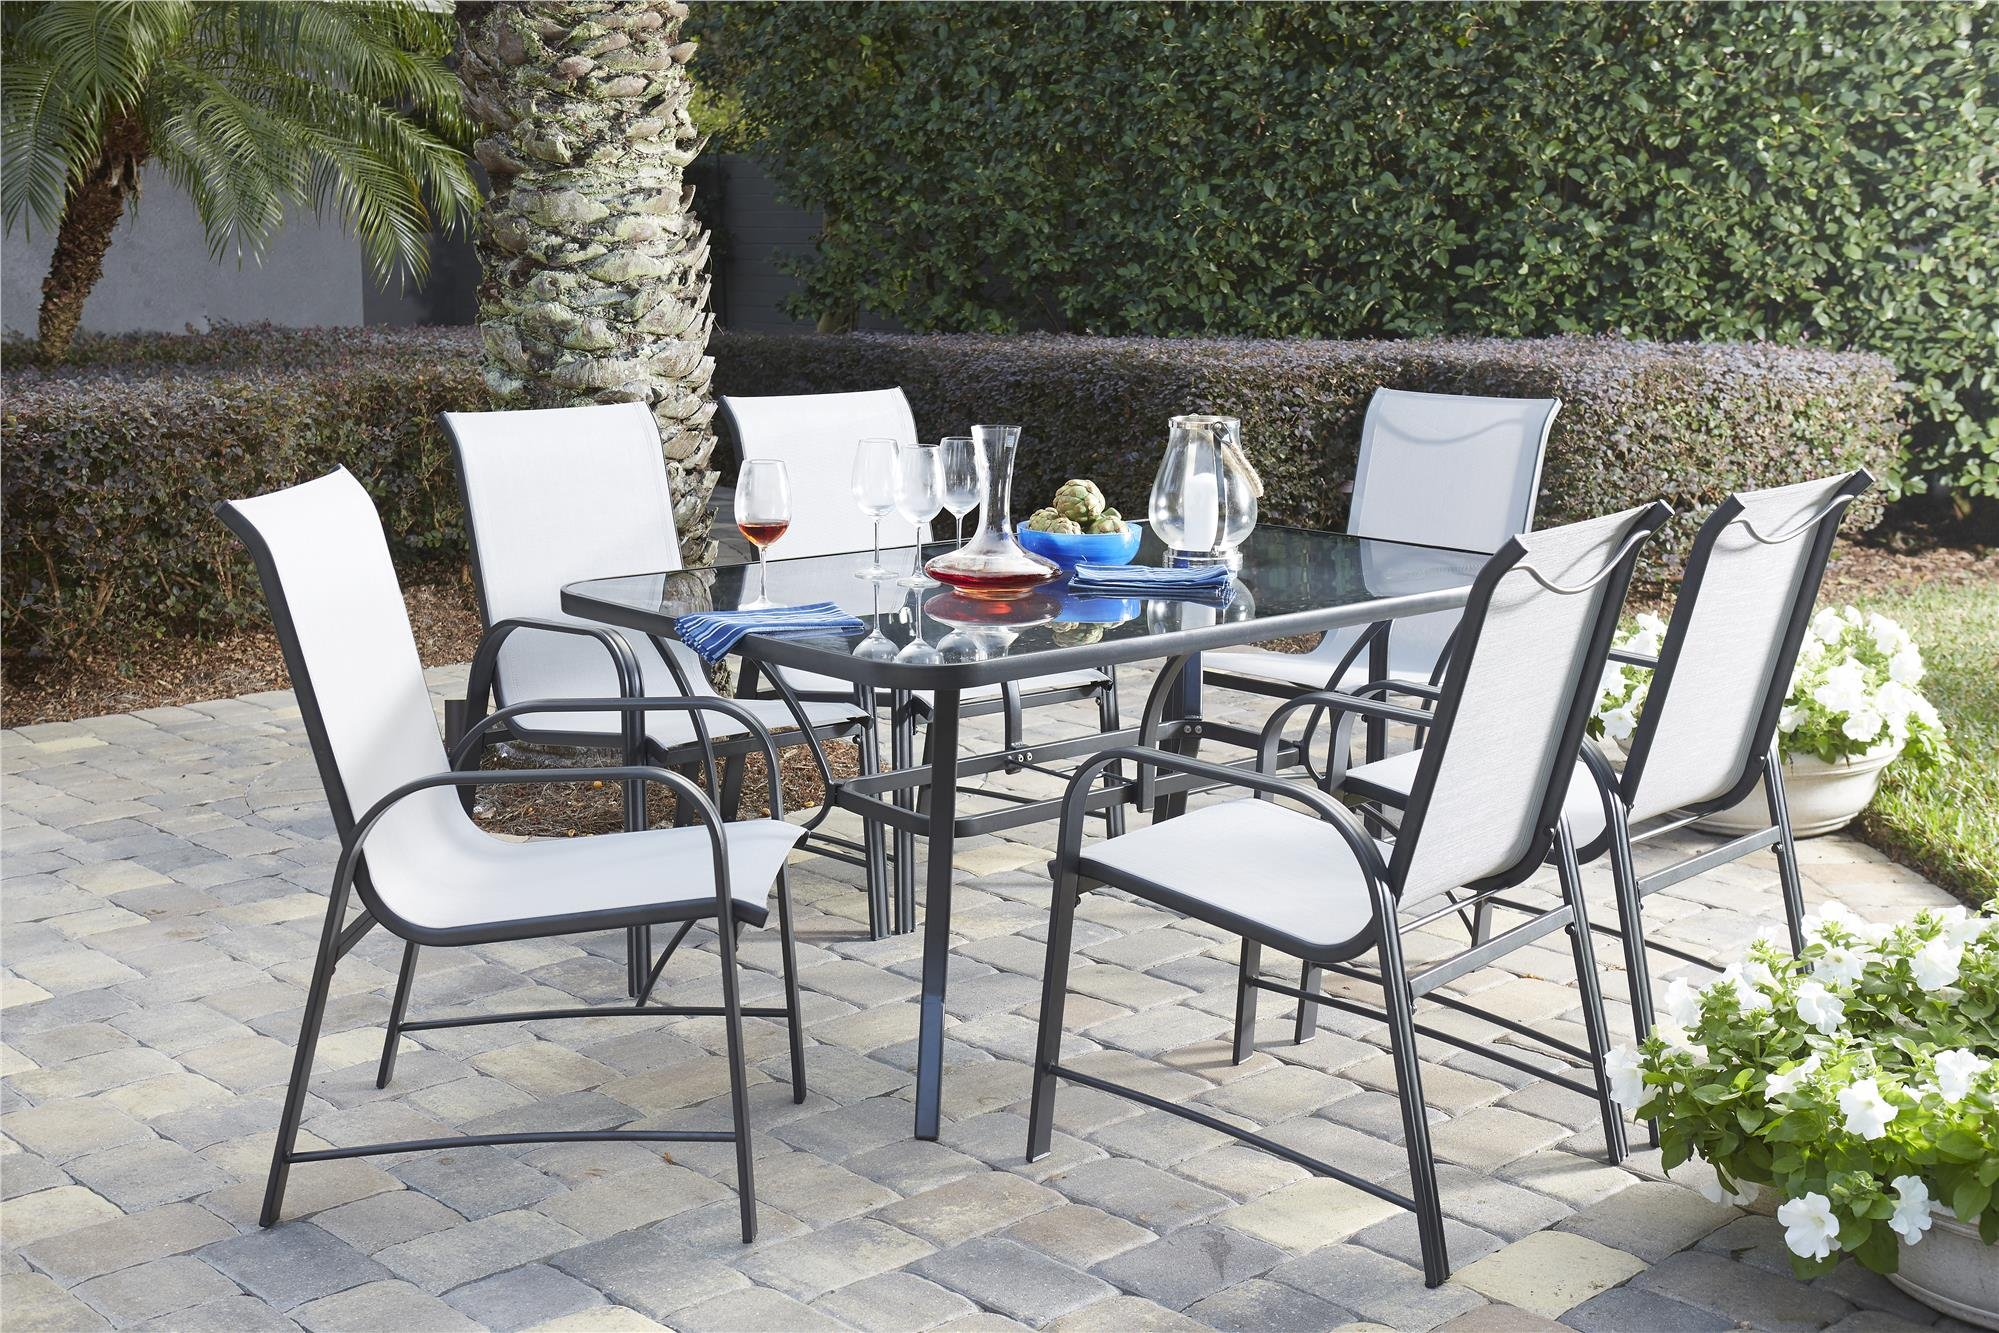 "Cosco Outdoor Dining Chairs, 6-Pack, Gray Frame, Light Gray Sling - Cosco's Paloma collection outdoor dining chairs feature an all weather sling and a durable weather resistant outdoor powder coated steel frame The dining chairs can be paired with the Paloma outdoor dining table or can match existing patio furniture Dimensions are: dining chairs 21.41"" L x 26.57"" W x 27.4"" H - patio-furniture, dining-sets-patio-funiture, patio - 91Nxwqo8niL -"